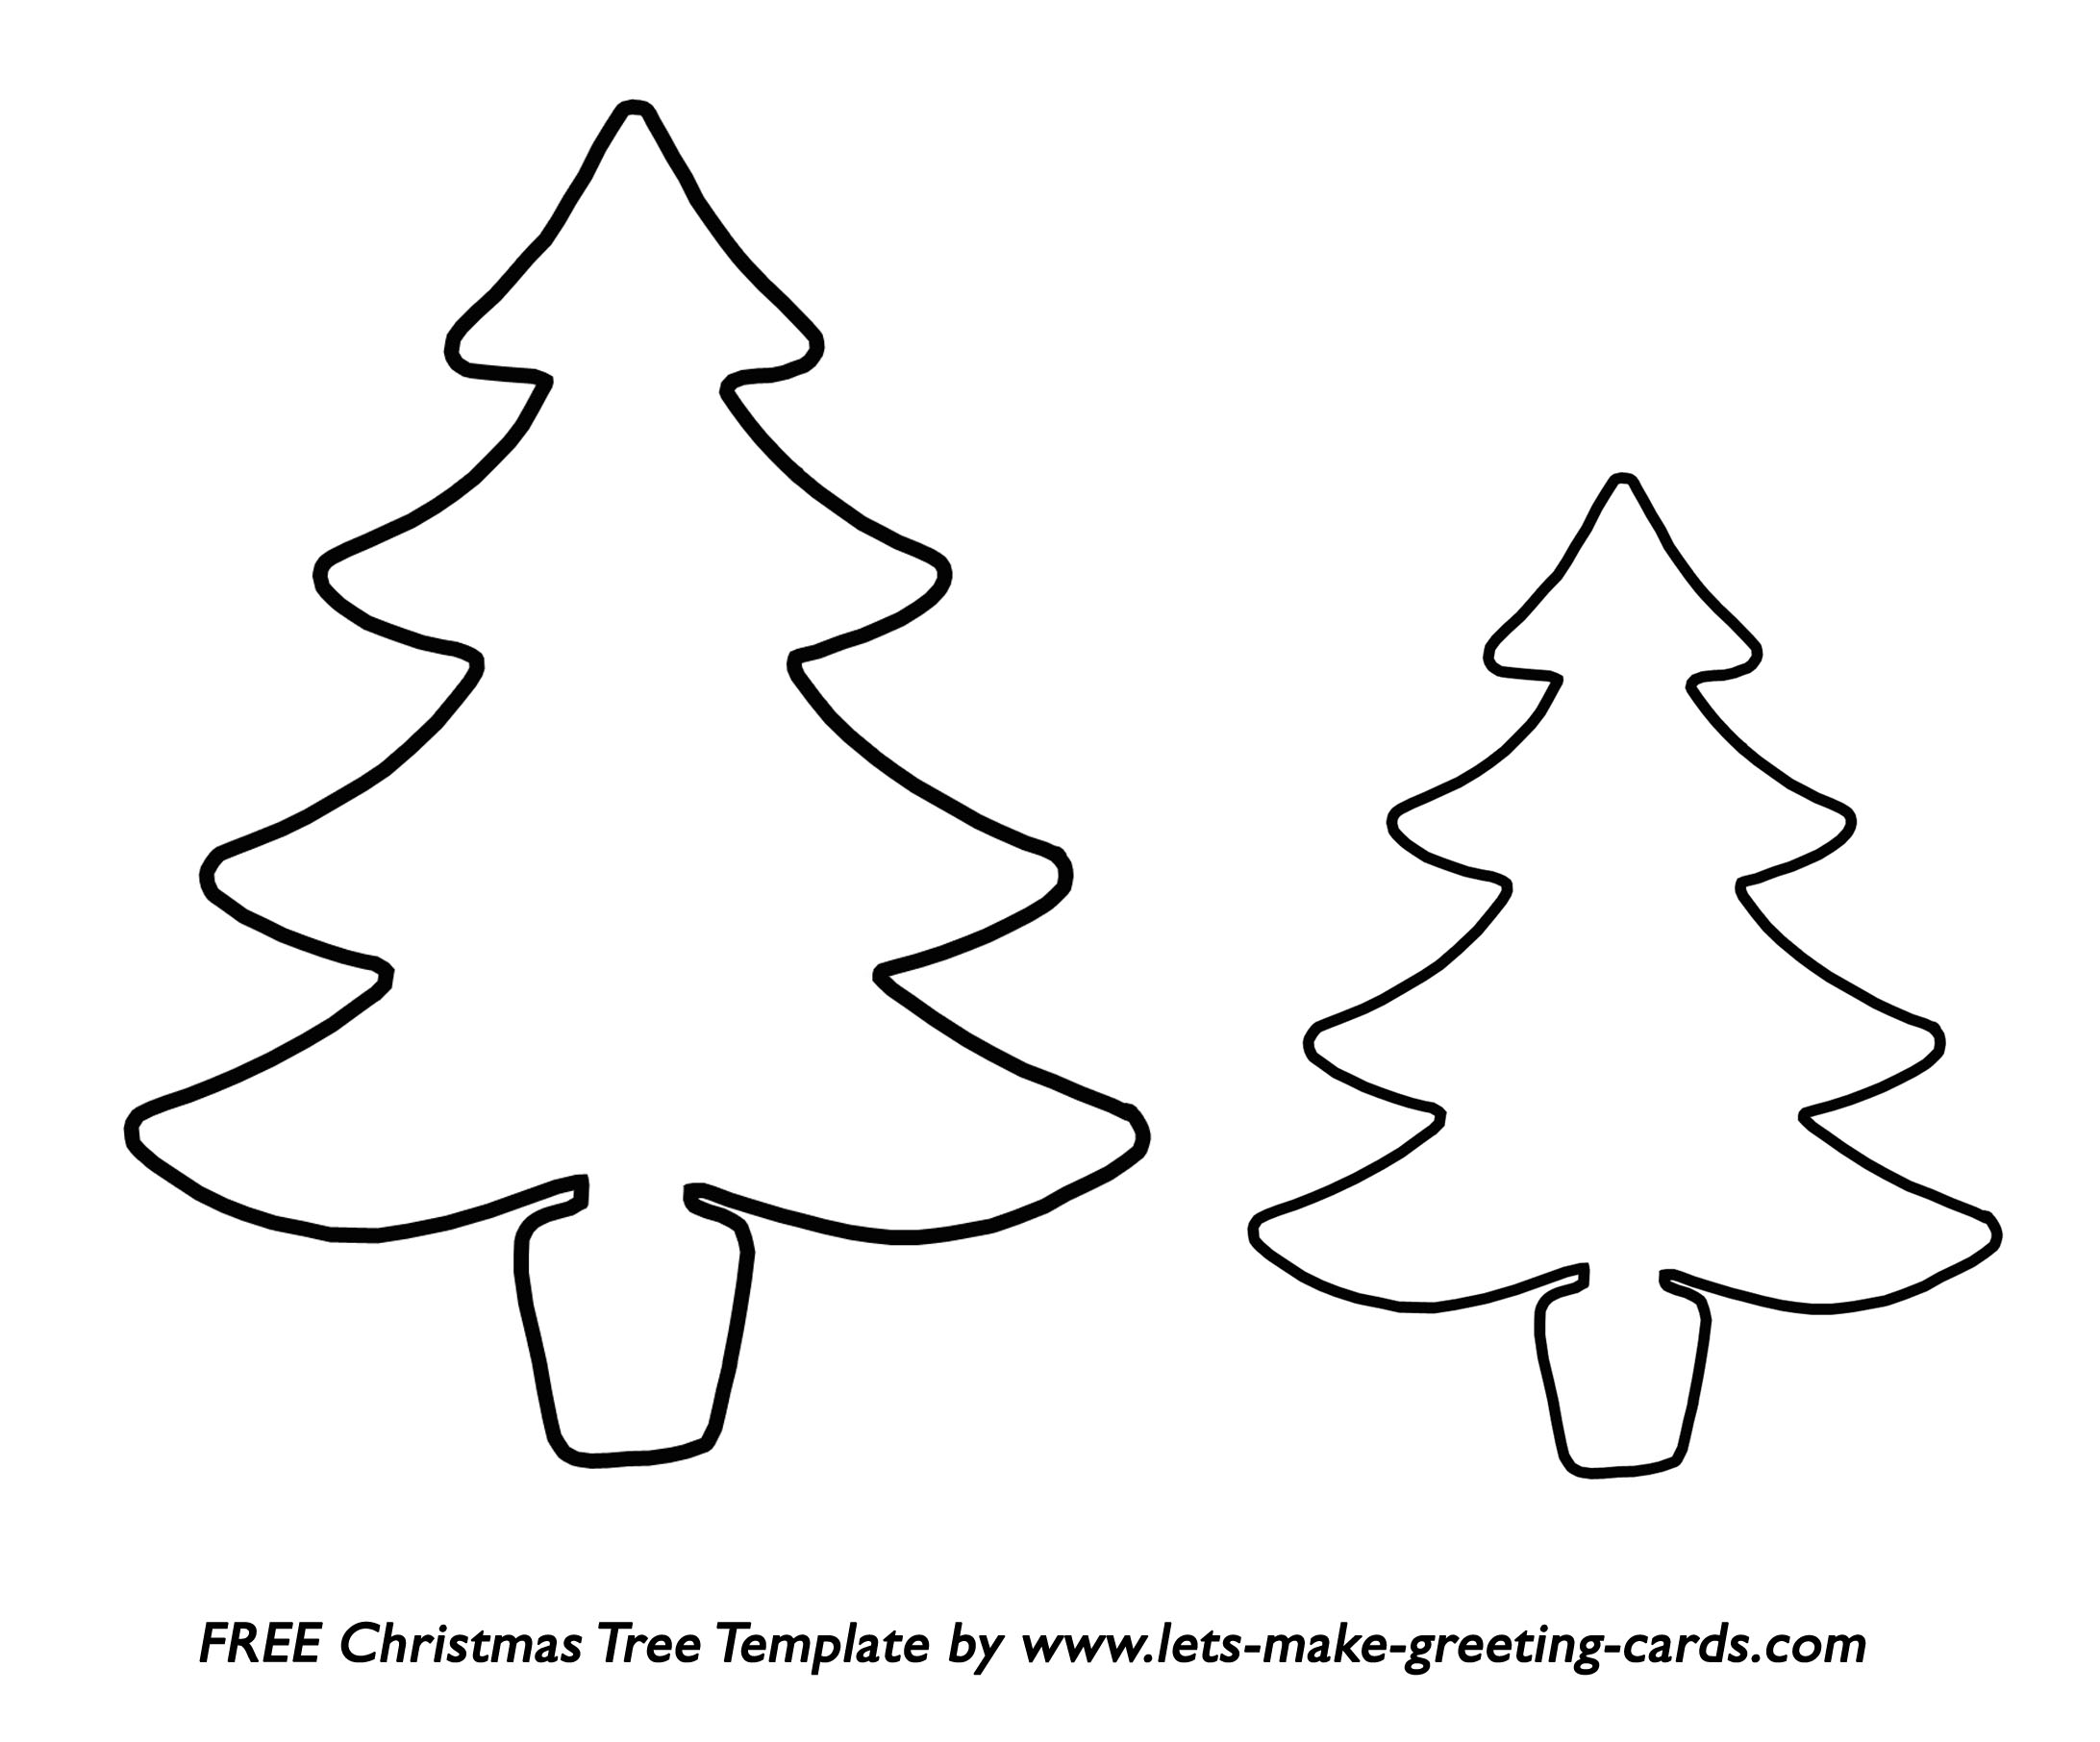 Free Christmas Card Ideas For Children To Make Part - 41: Step 1 Click Here To Download This Christmas Tree Template.